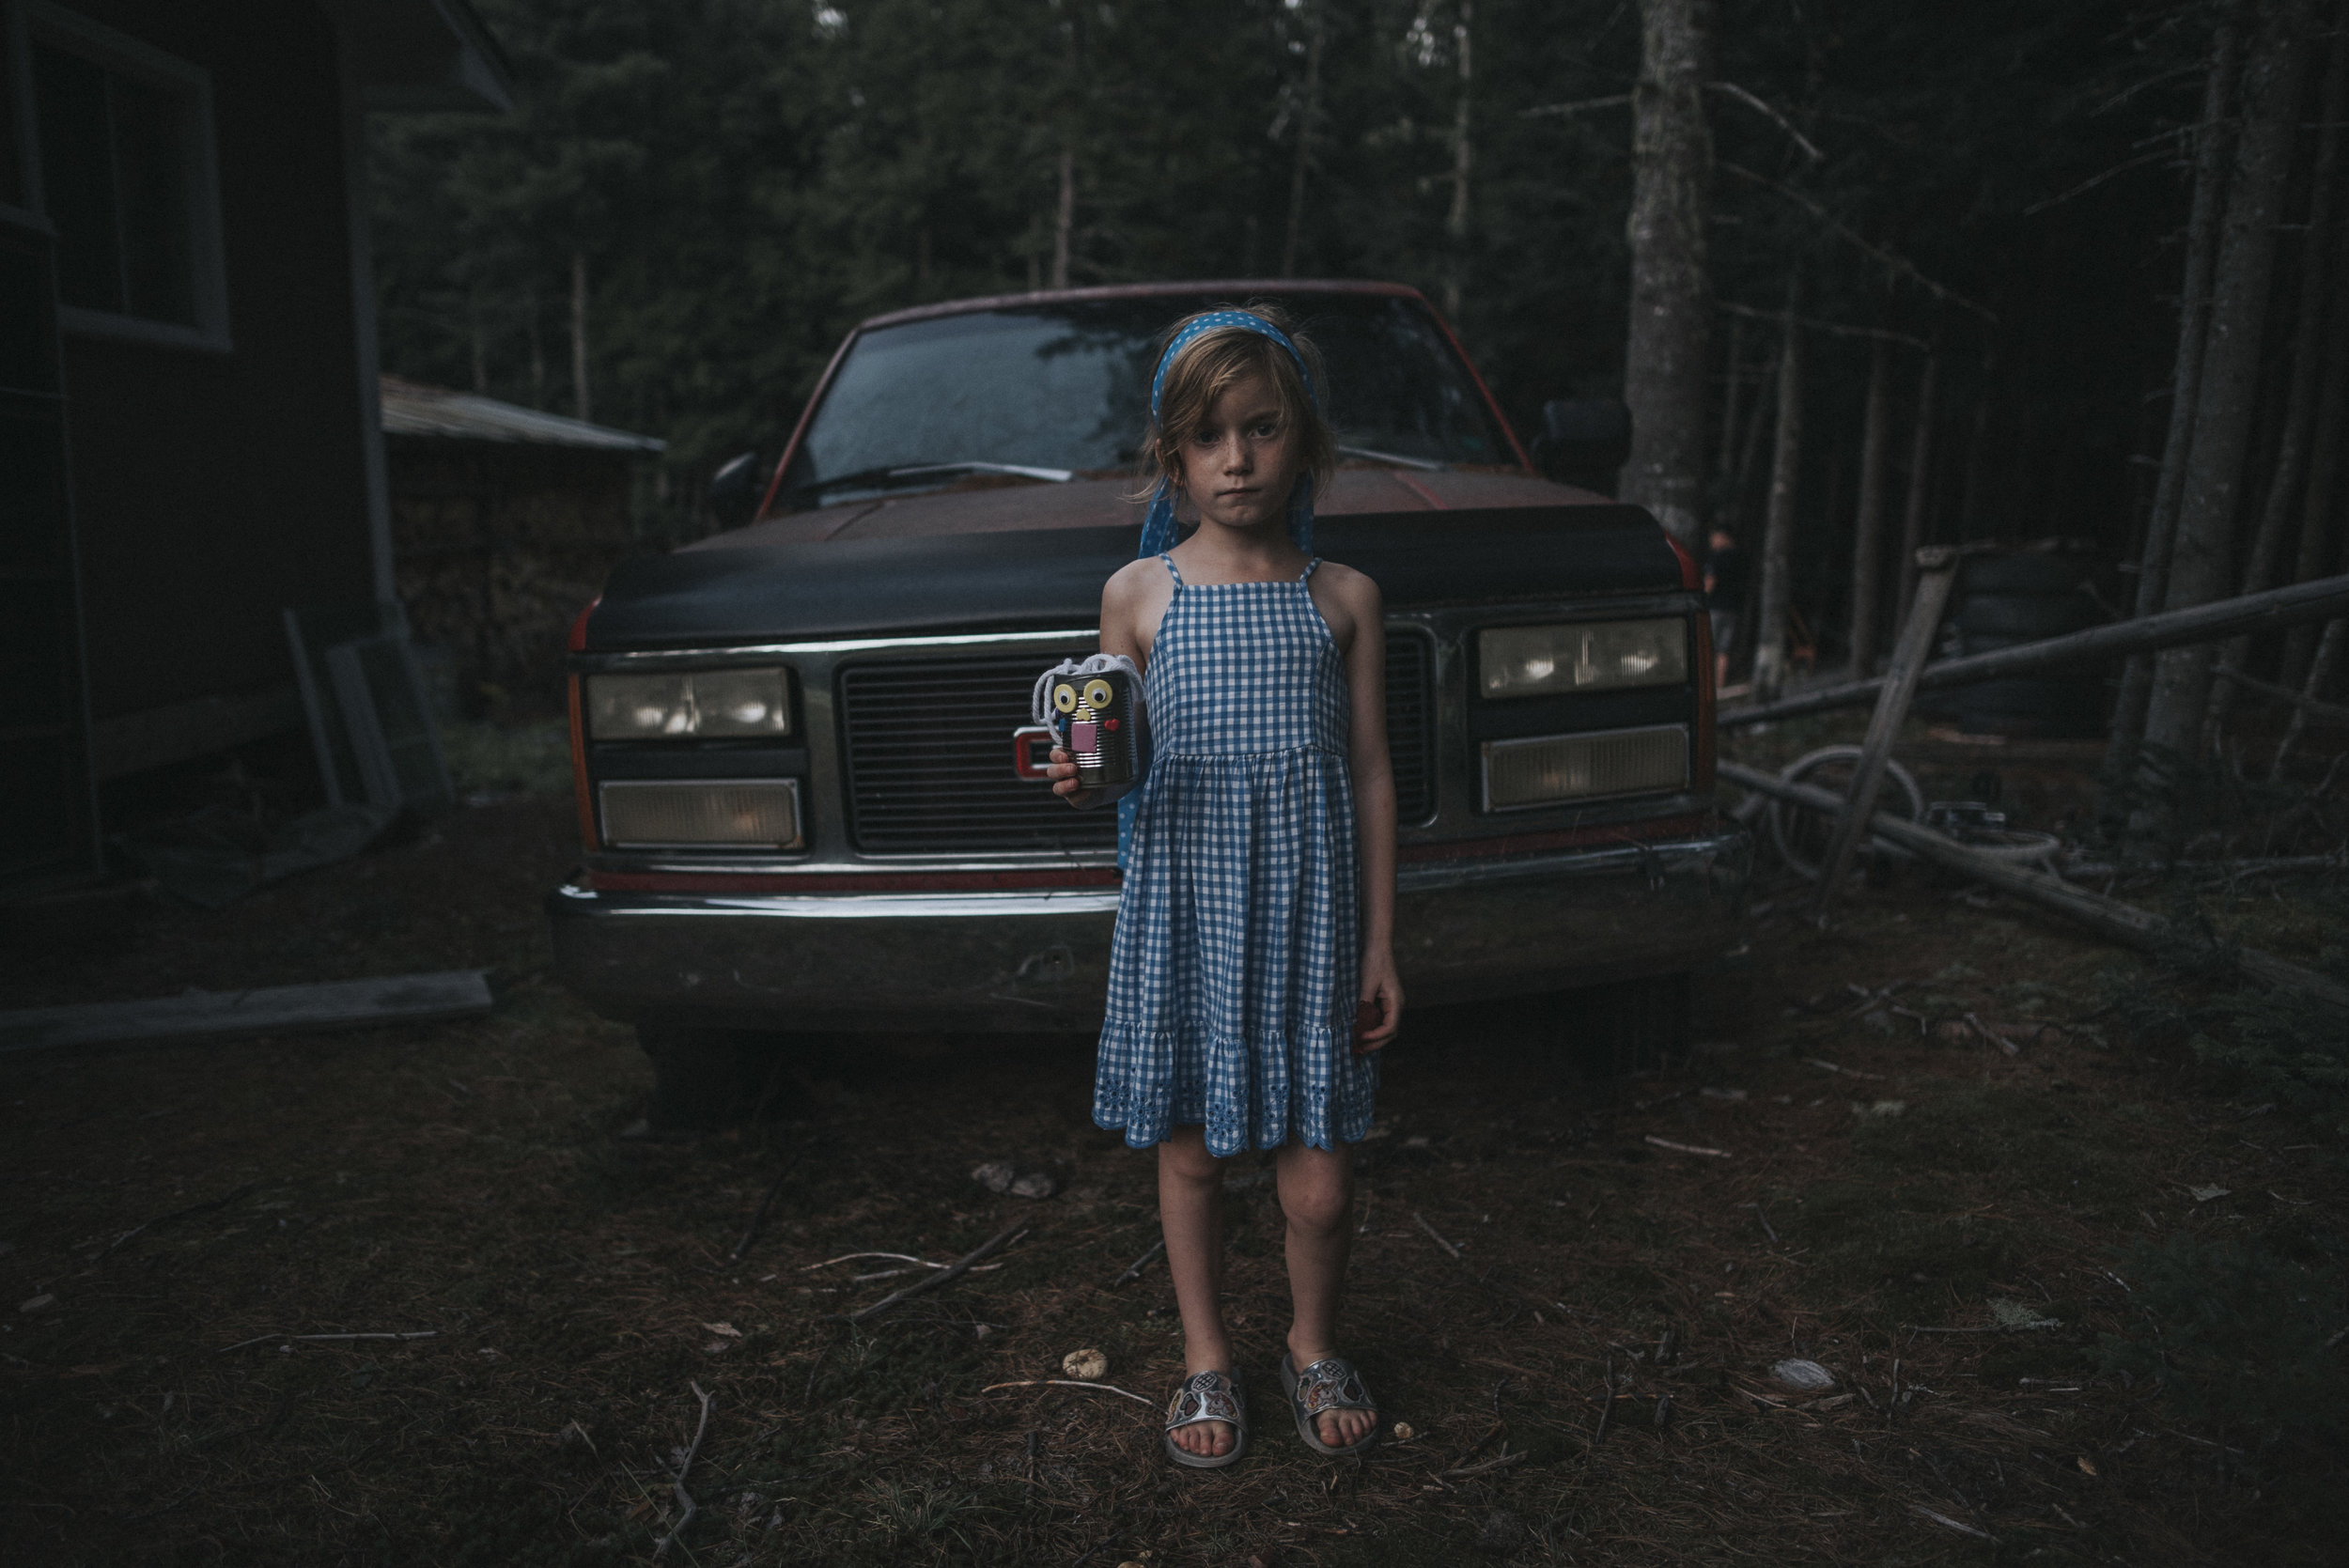 "Joni Burtt - ""in front of the truck at dusk""  24mm, !SO200, f/1.8, 1/250"